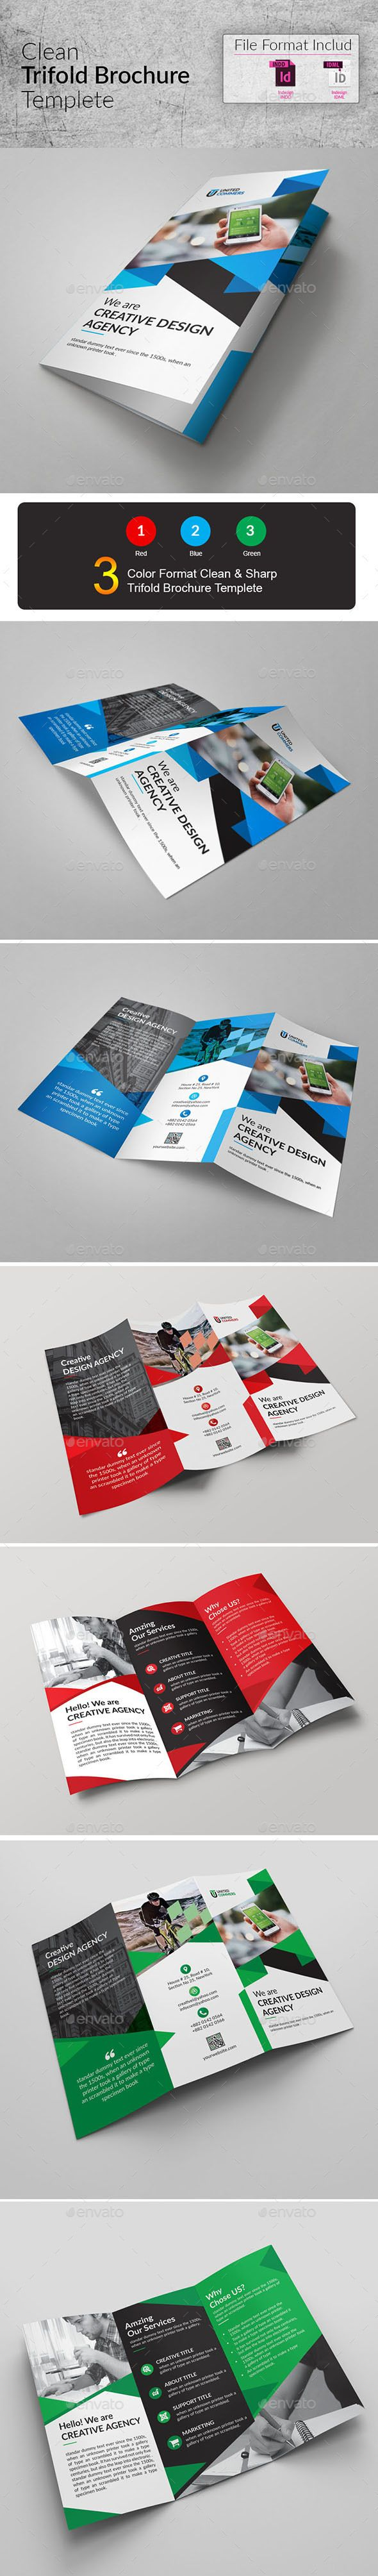 Trifold Brochue Template InDesign INDD